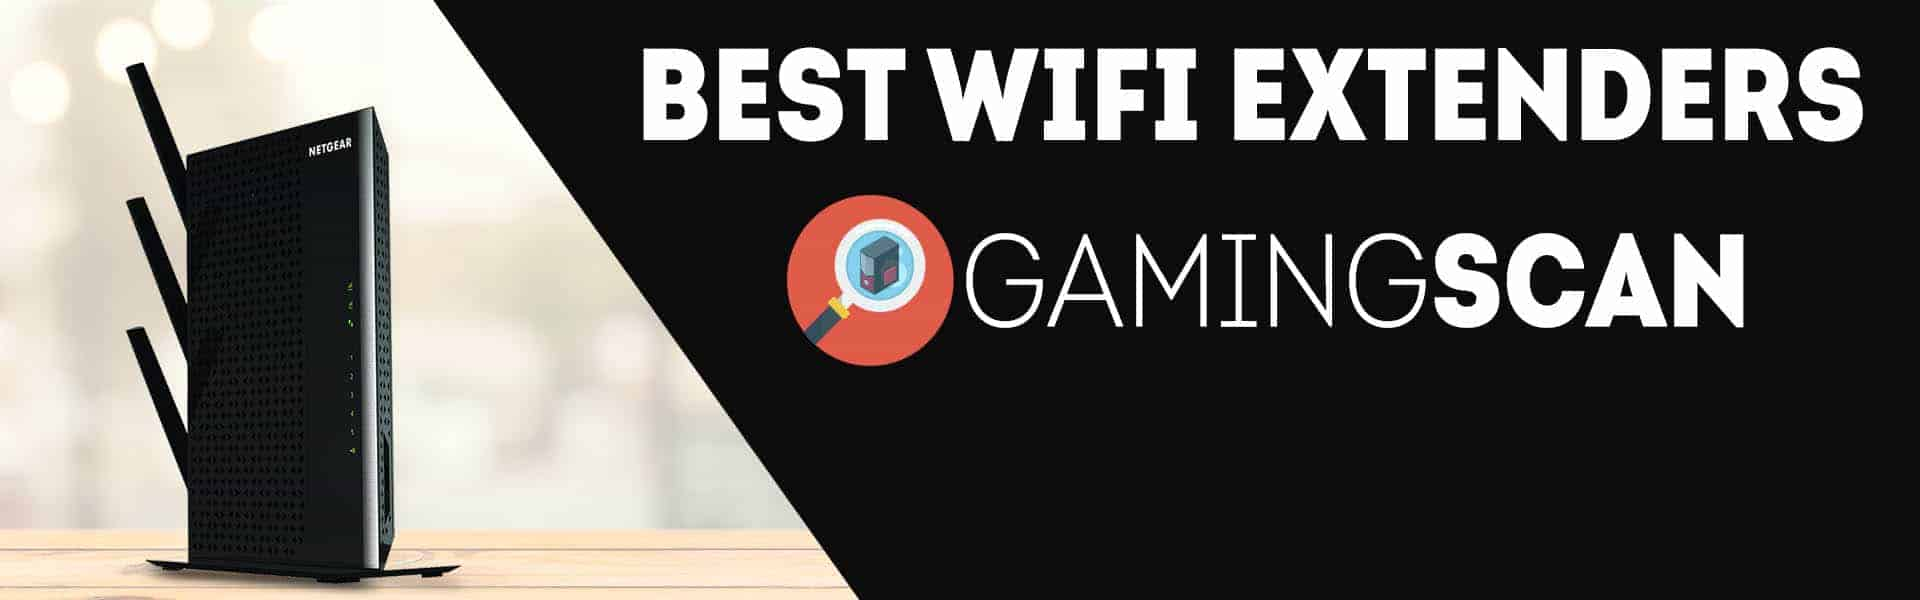 Best WiFi Extender 2018 – Comprehensive Buyer's Guide and Reviews